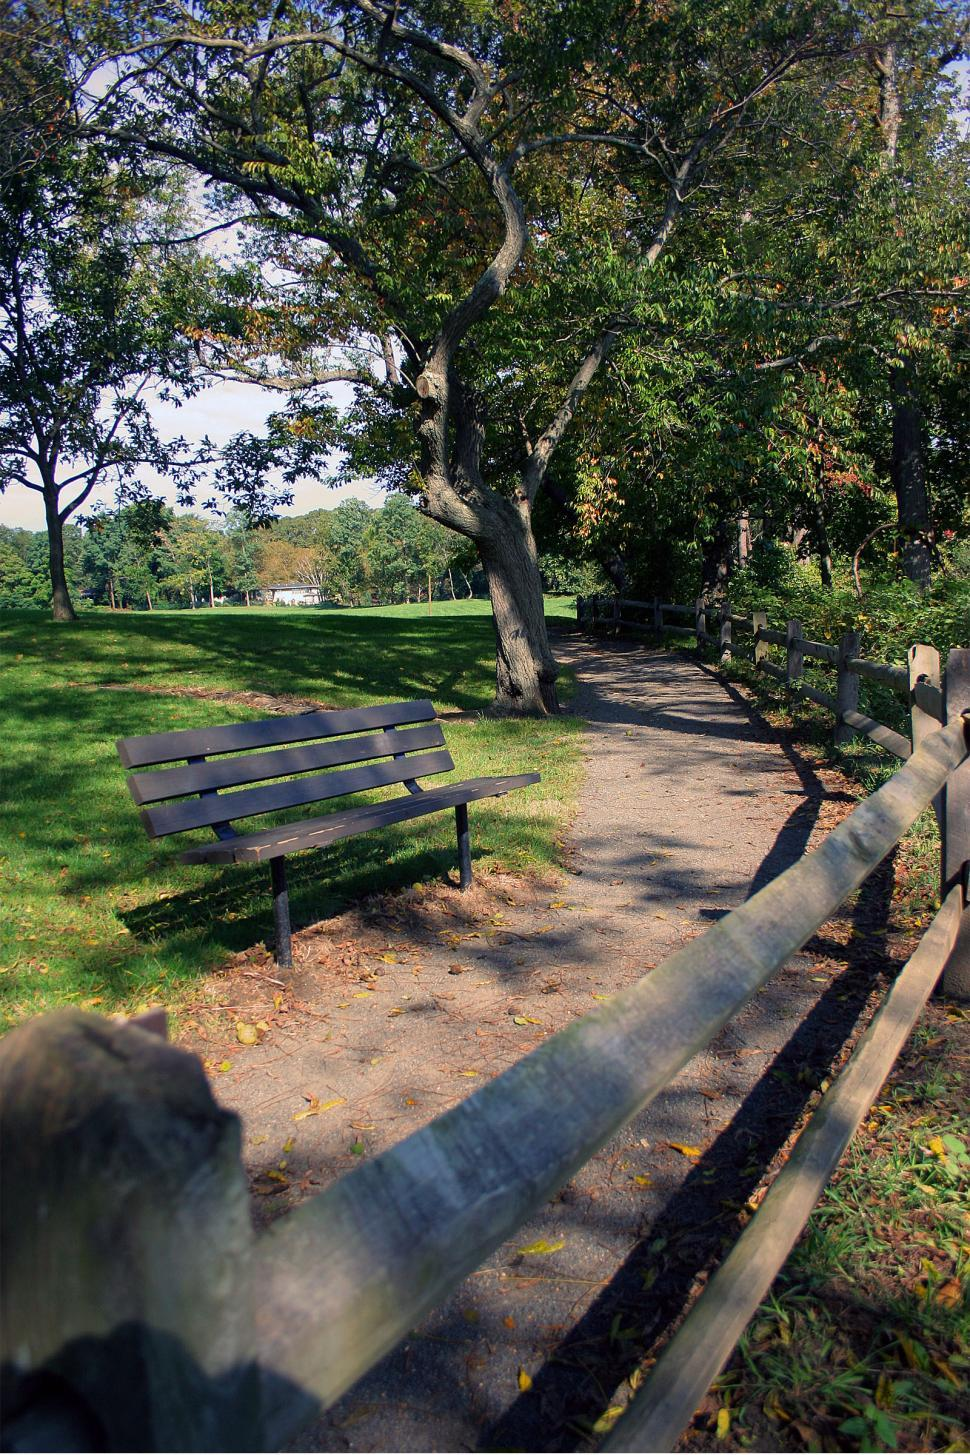 Download Free Stock HD Photo of Bench Along Walkway at Park Online